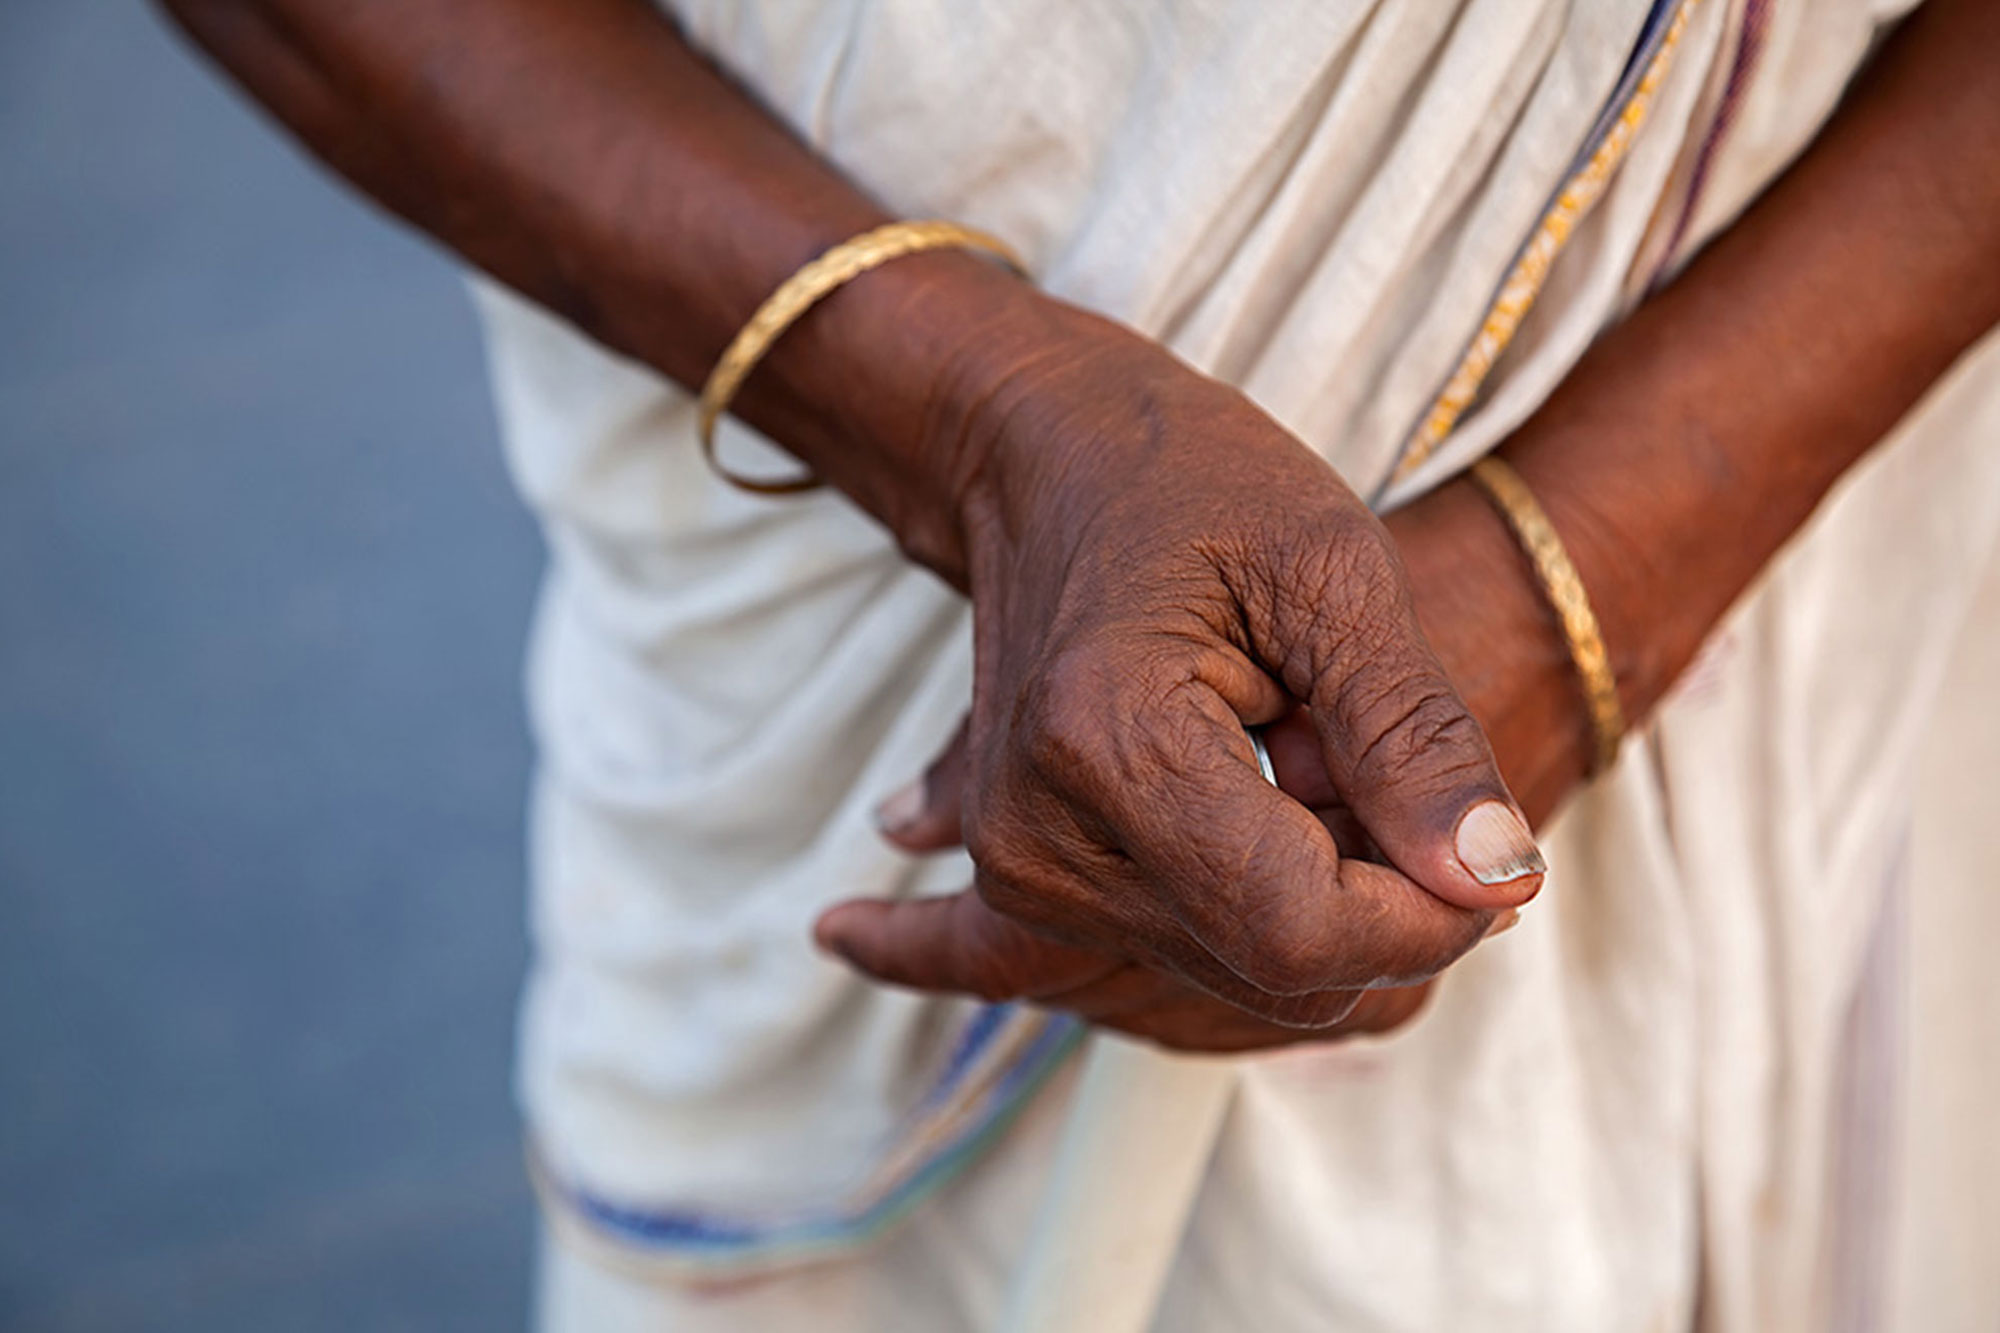 Hands of a woman in Kolkata, India. © Ulli Maier & Nisa Maier